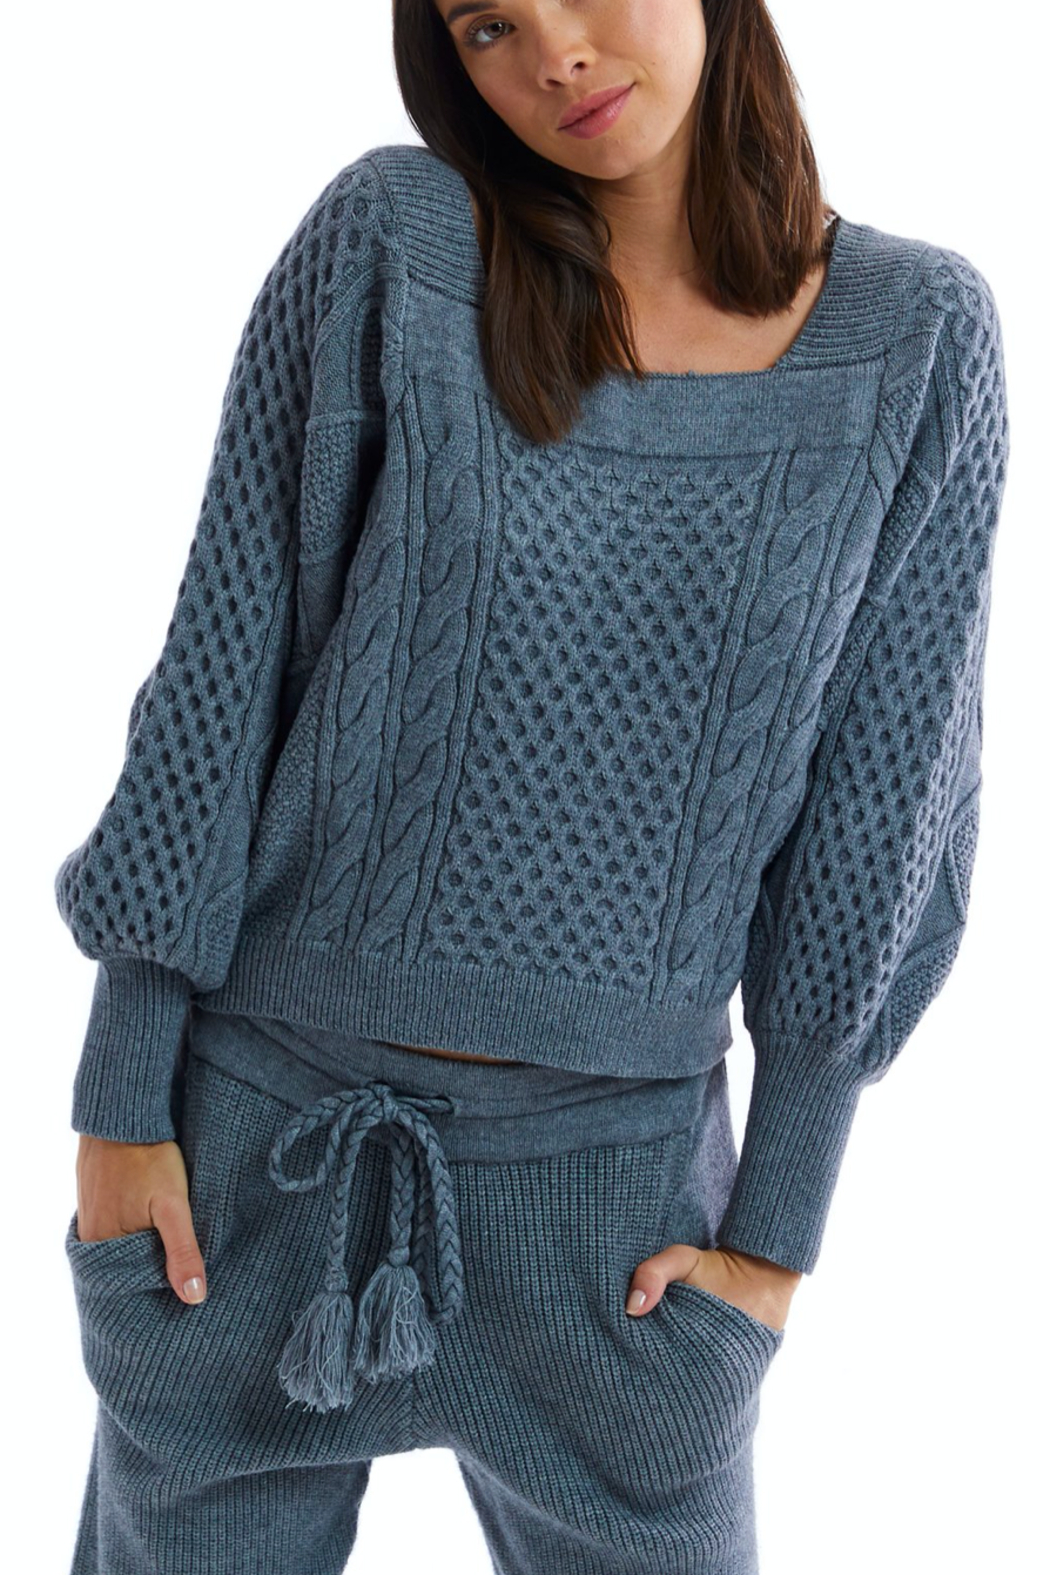 Allison Collection Square Neck Cable Knit Sweater - Main Image